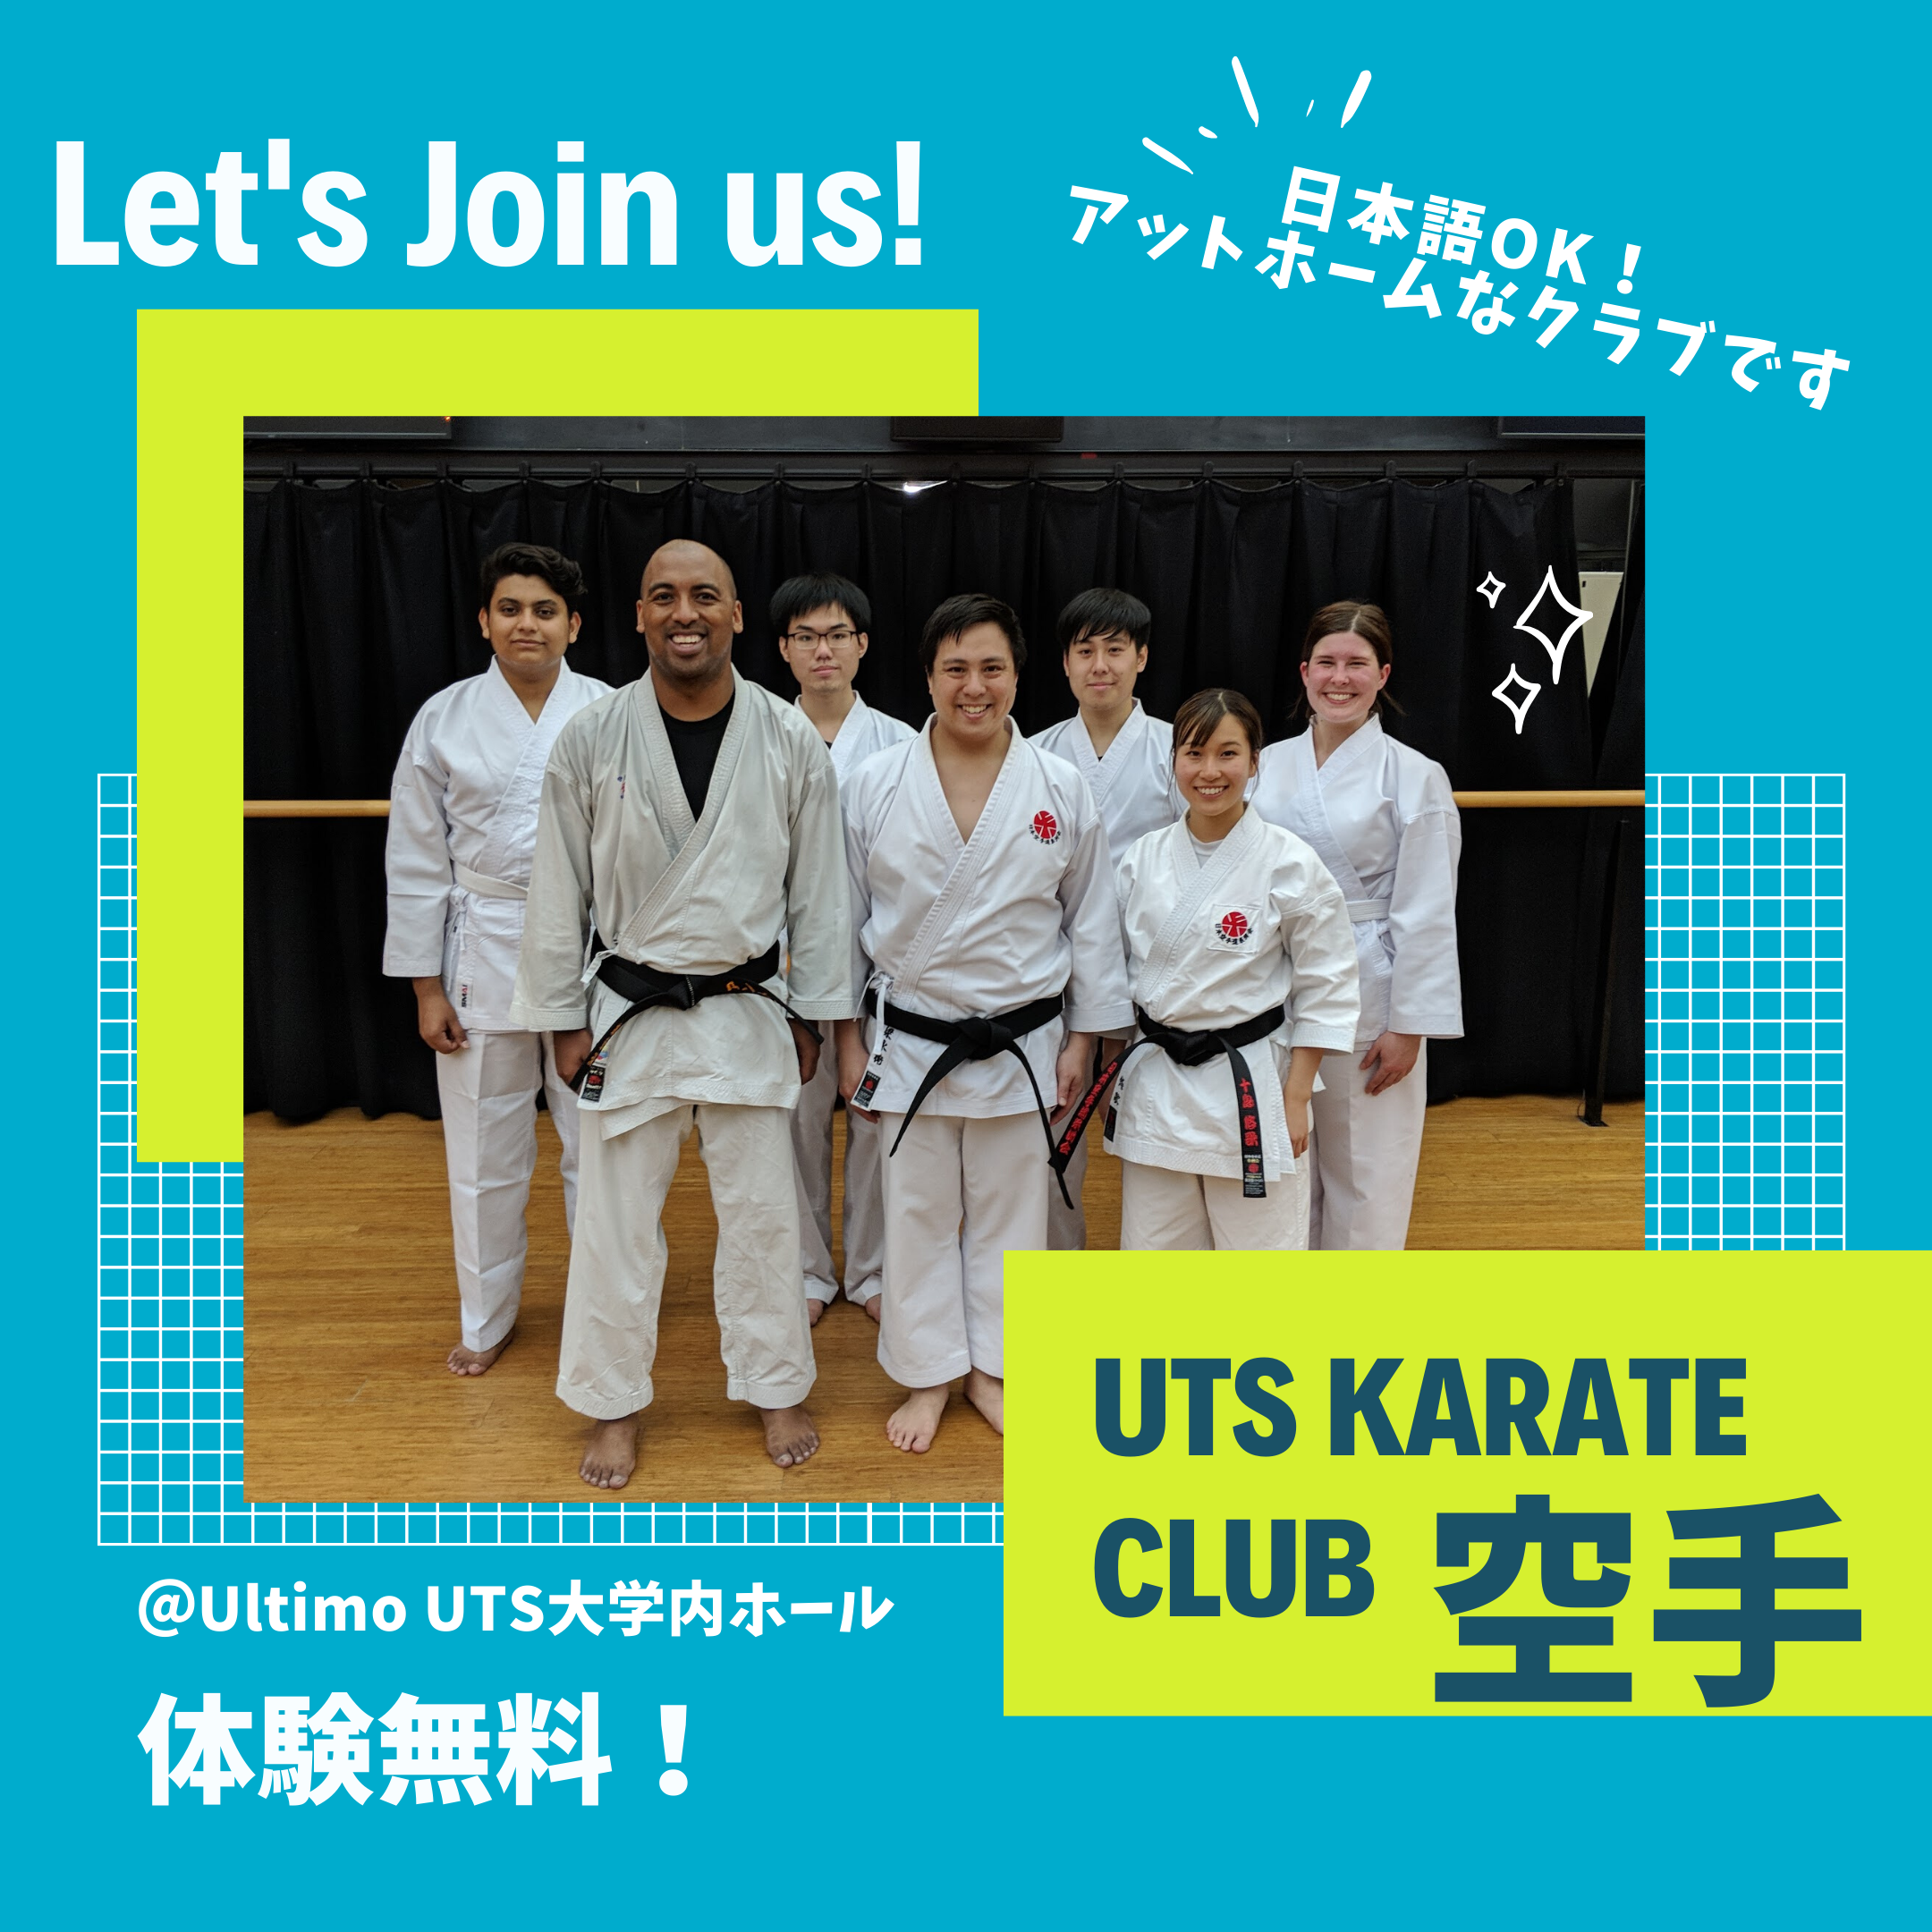 Uts karate club